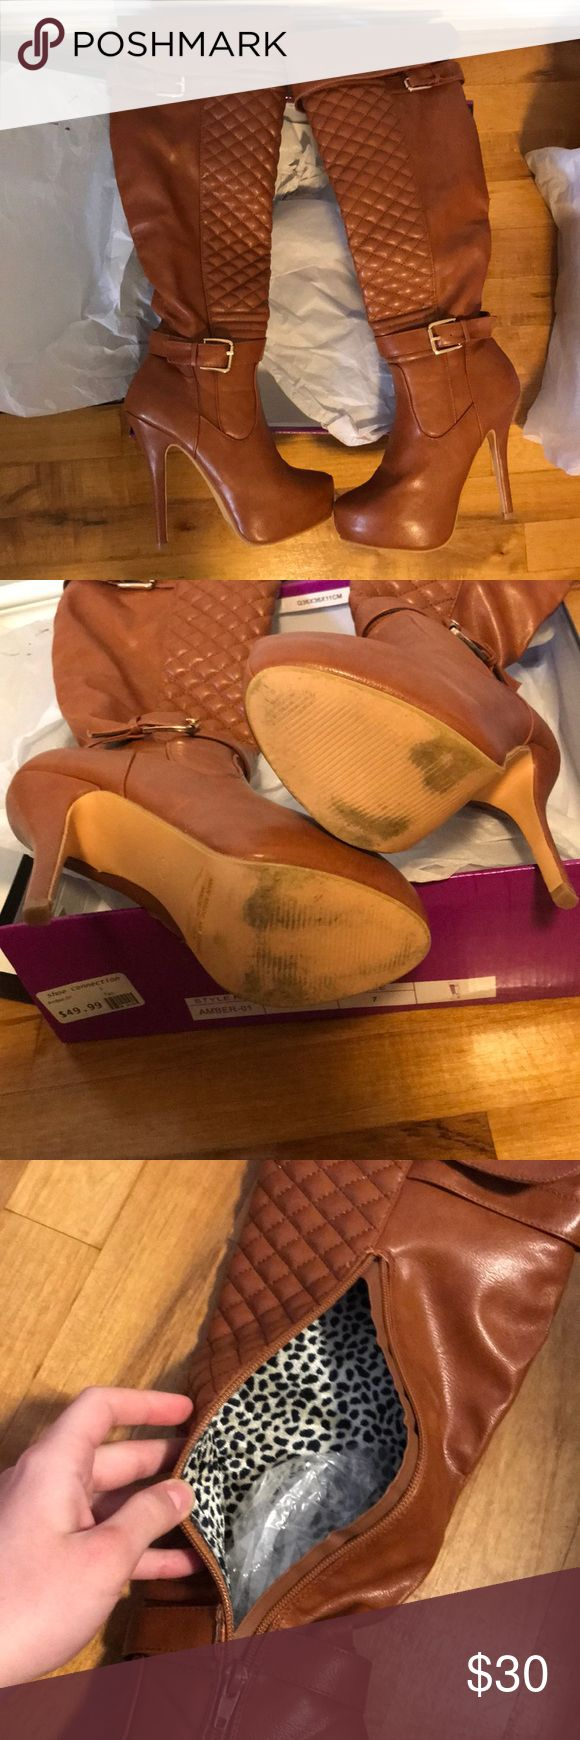 Tan heeled pumps Tan high heel pumps | size: 7 | worn once | comes with box | heel replacement included | Nature Breeze Shoes Heeled Boots